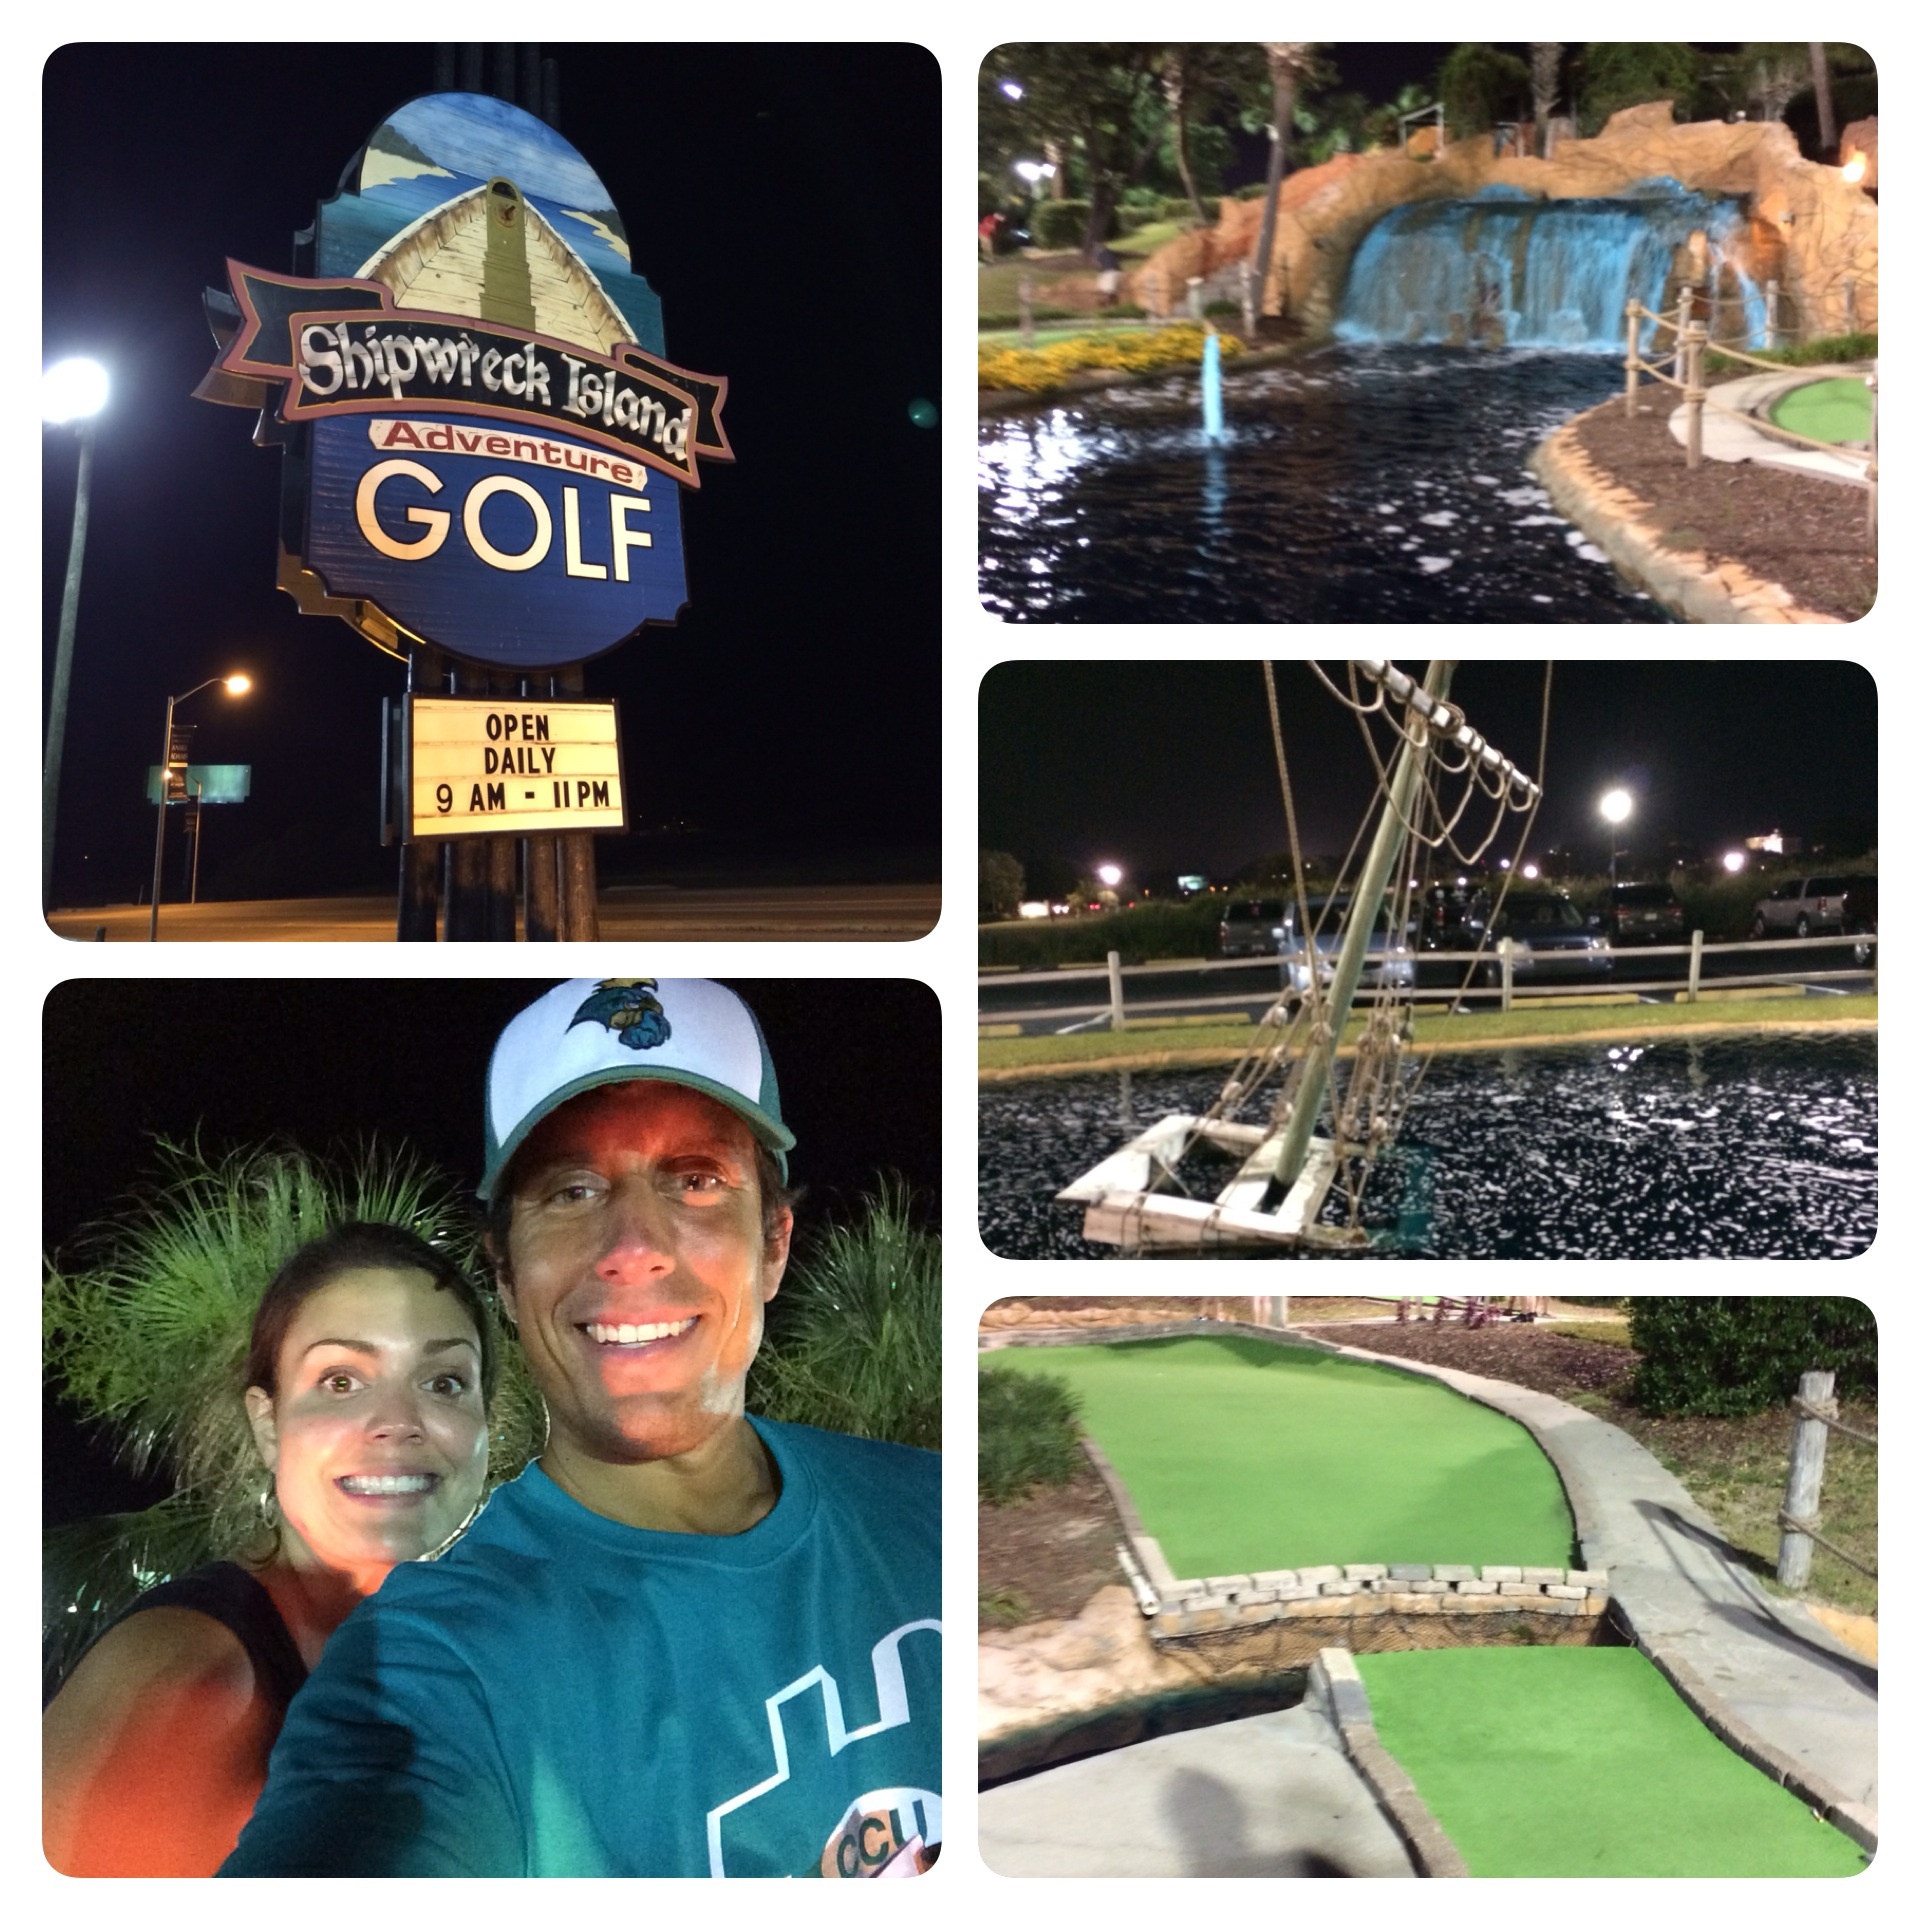 Playing putt putt under the lights is a cool experience. Shipwreck is a tough course!